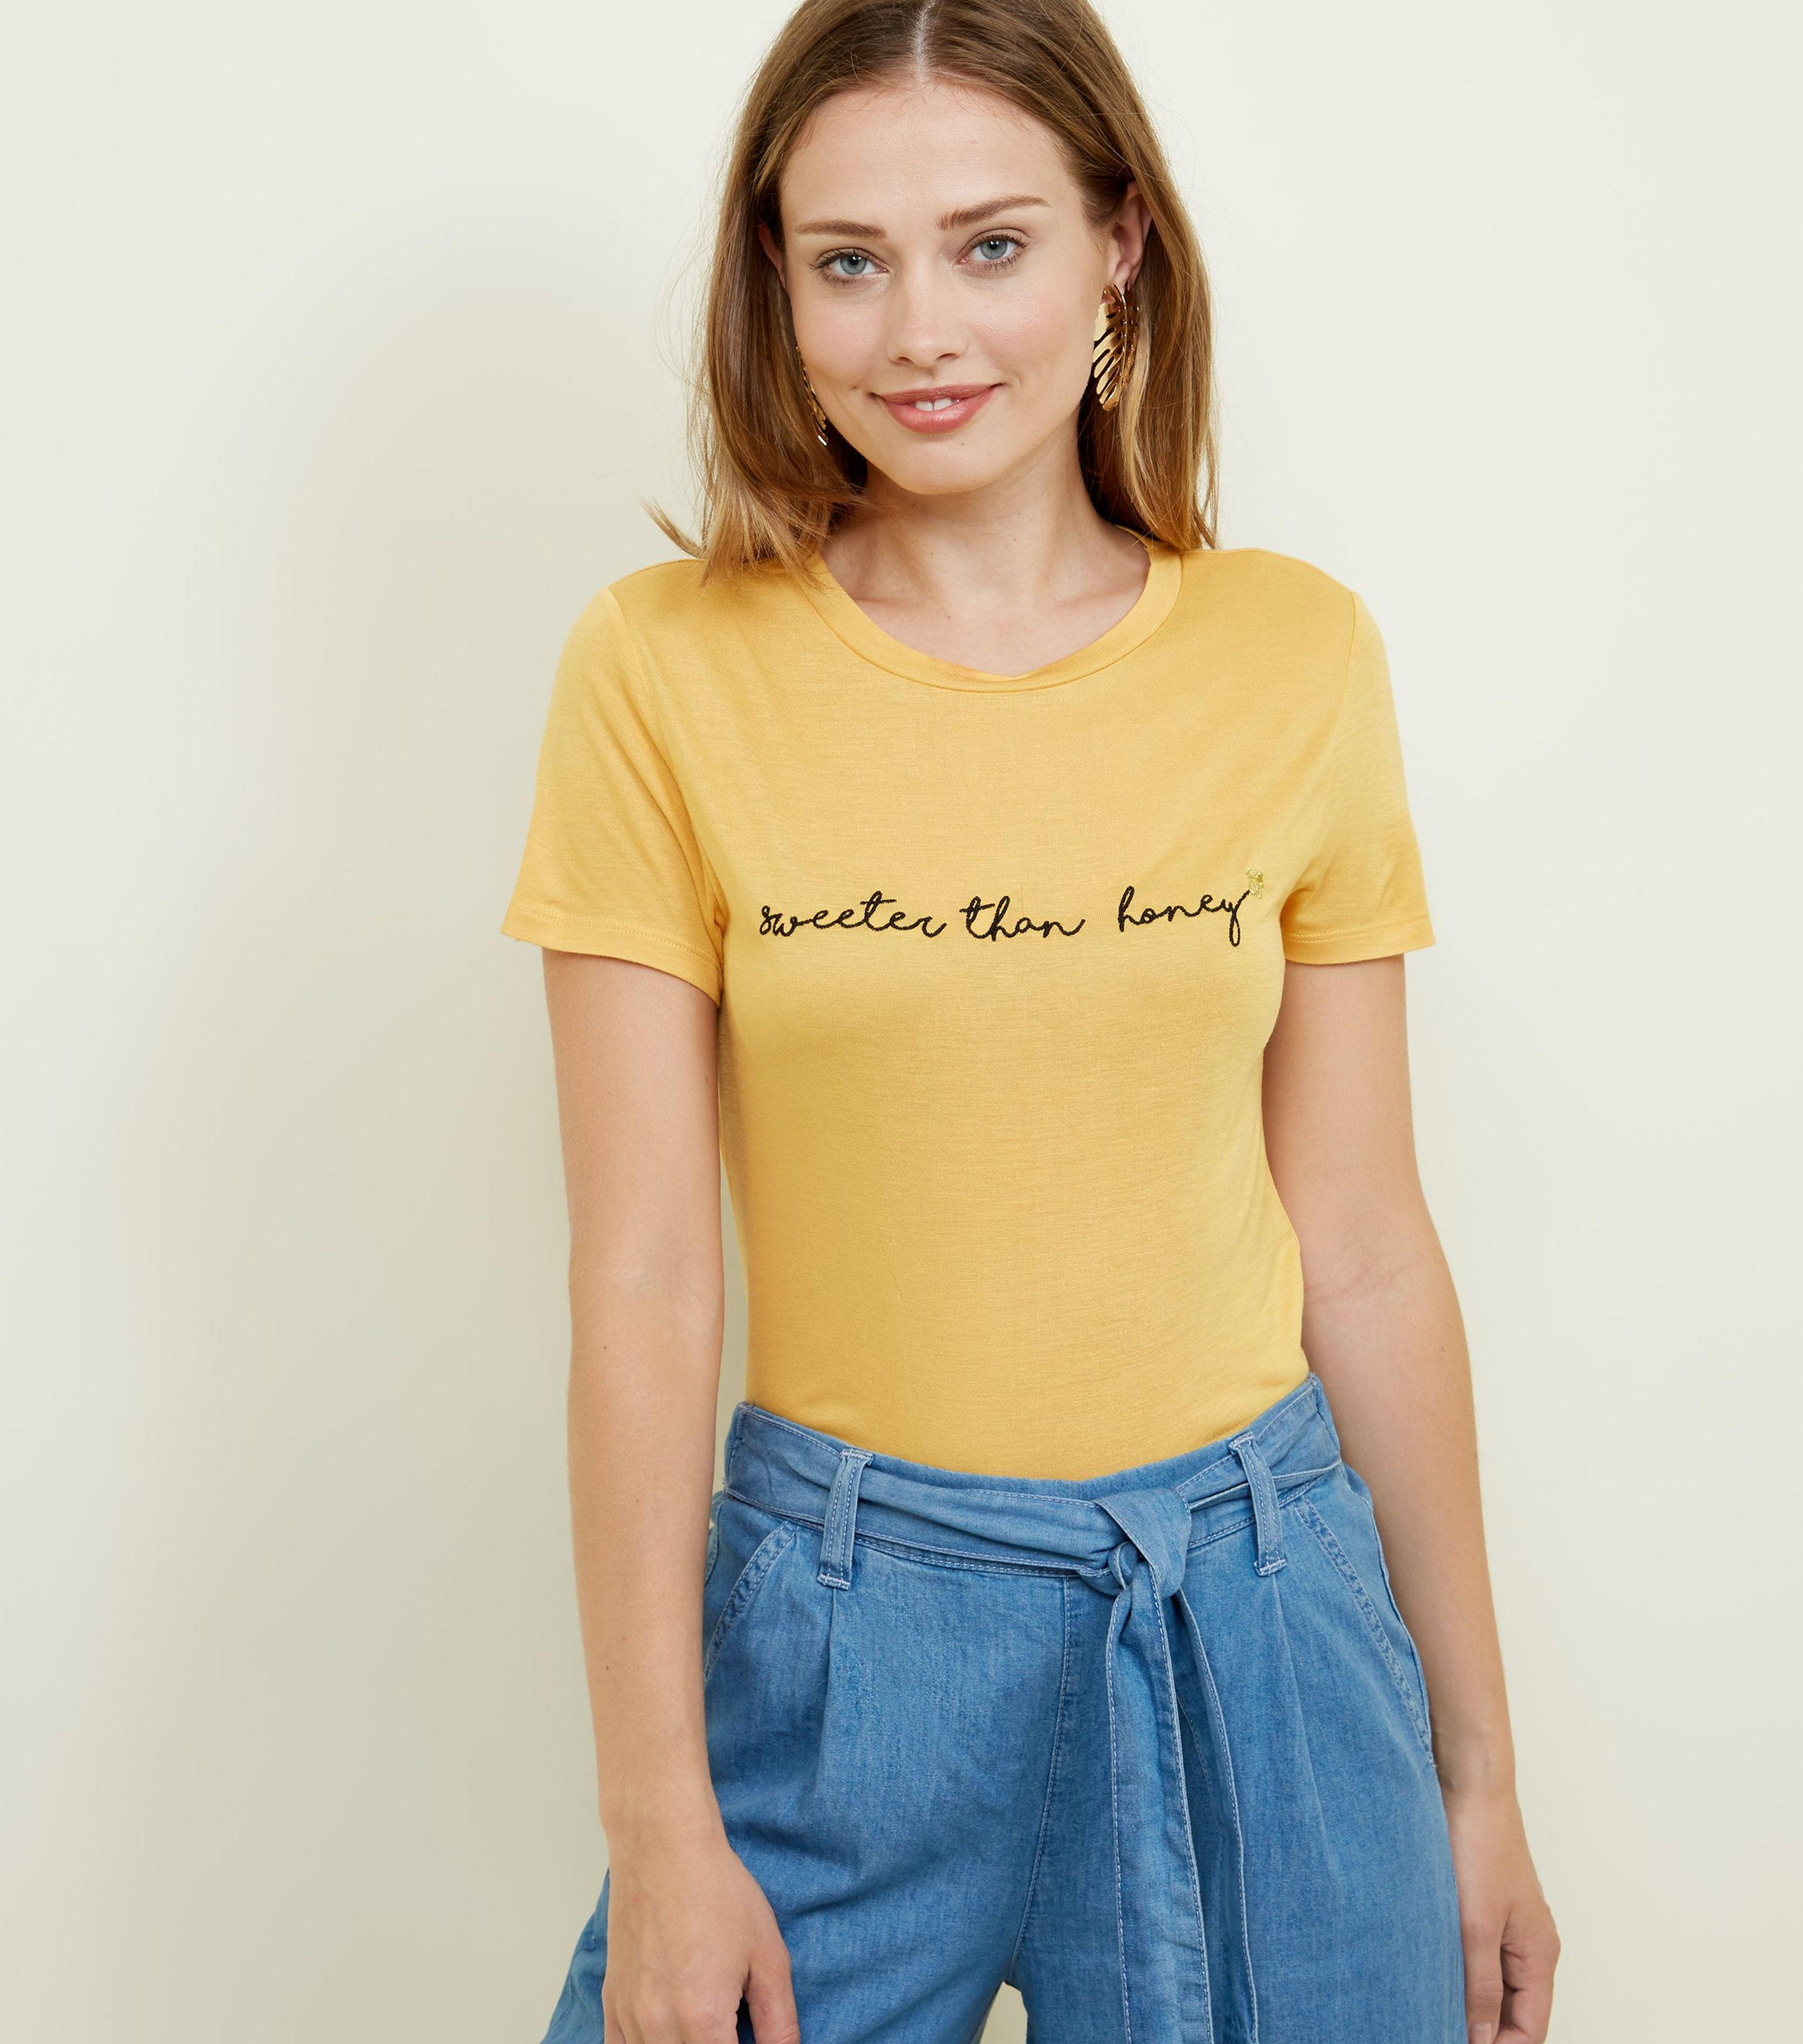 2c4190a165 New Look Mustard Sweeter Than Honey Slogan T-shirt in Yellow - Lyst